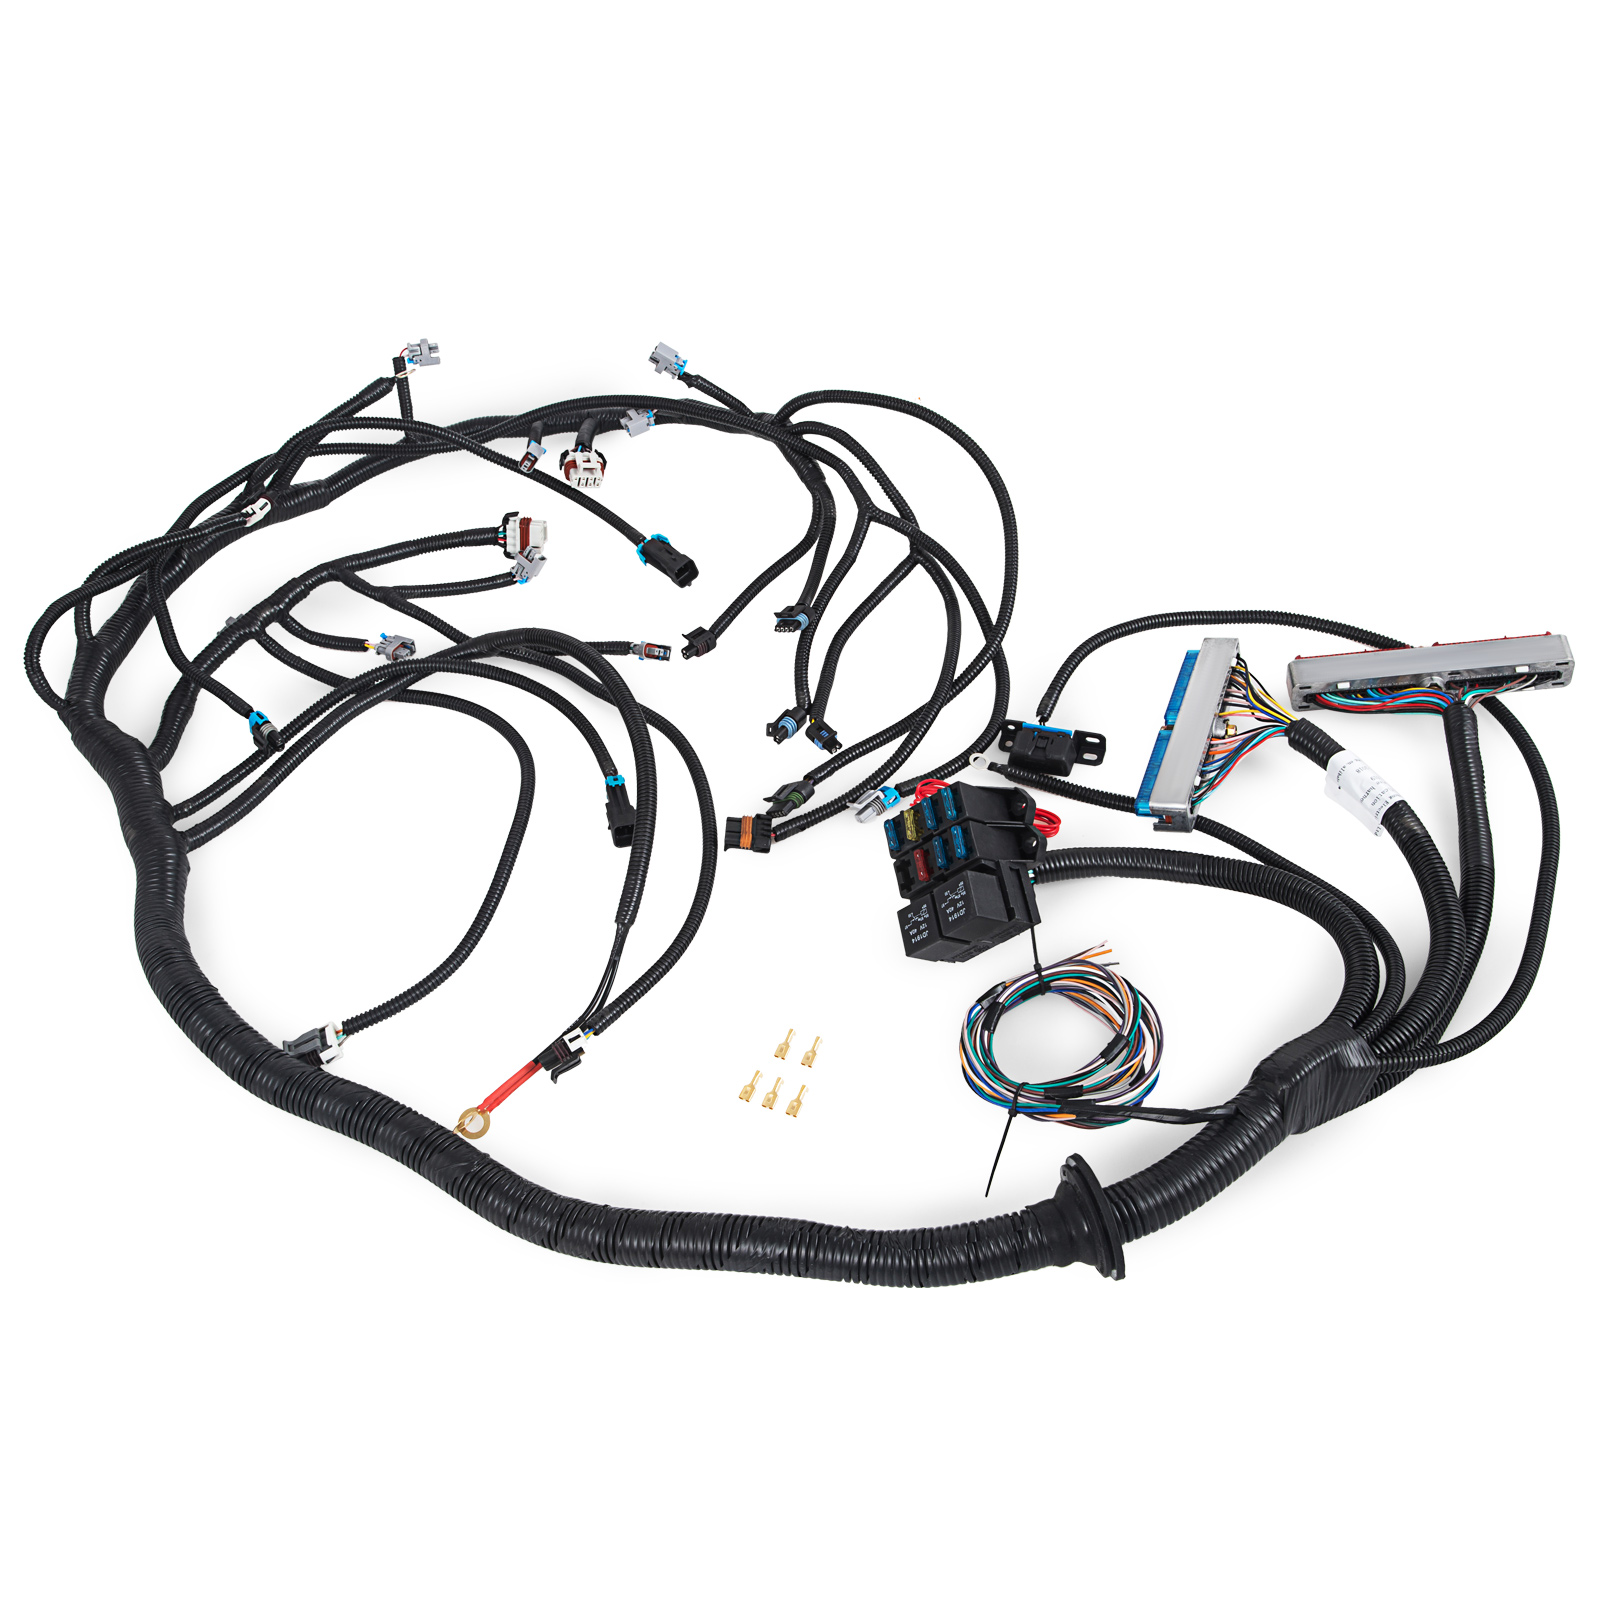 Nice Dbc Ls1 Standalone Wiring Harness With T56